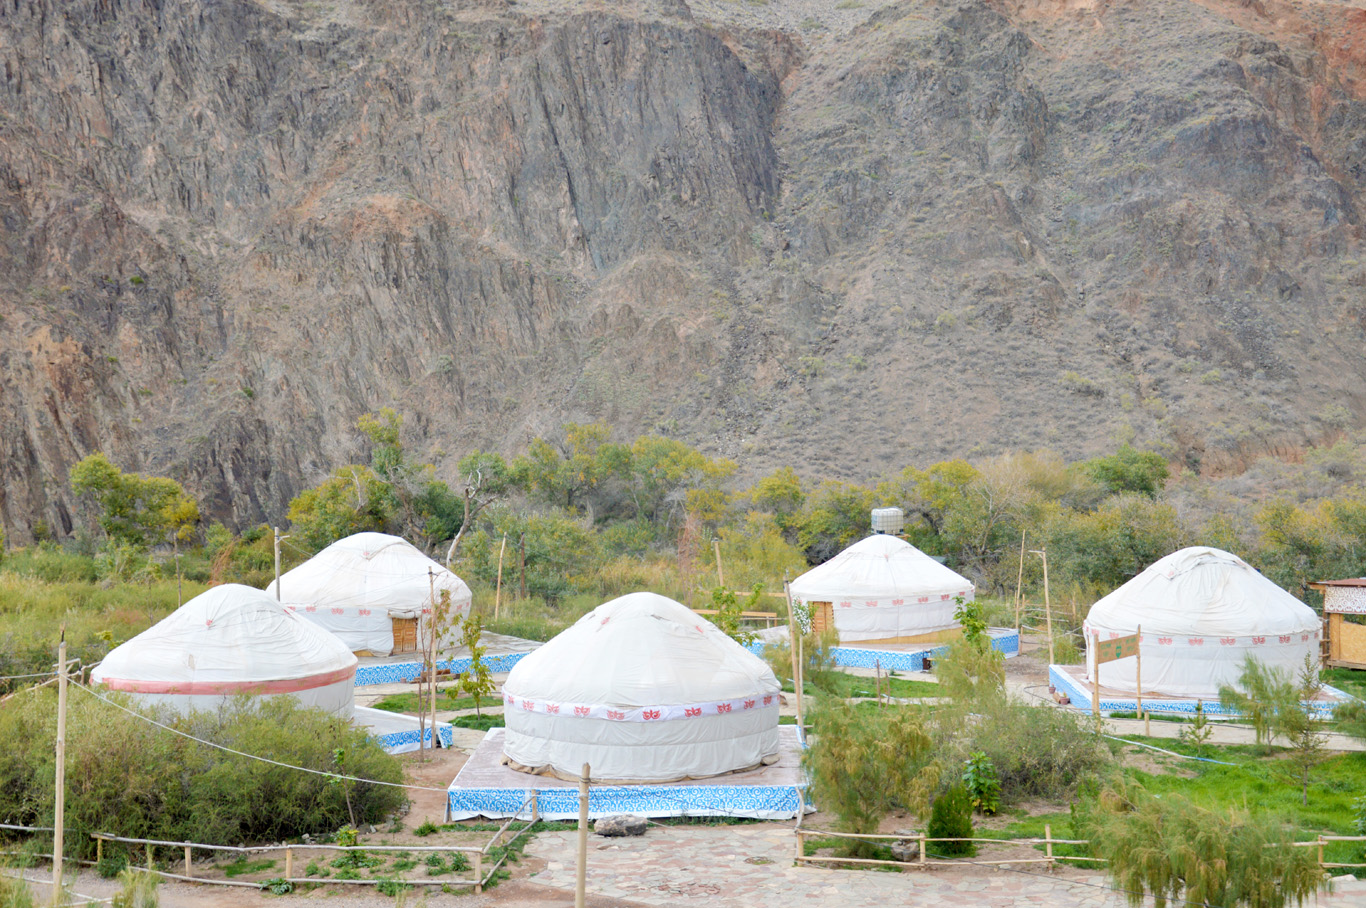 The yurts in the canyon